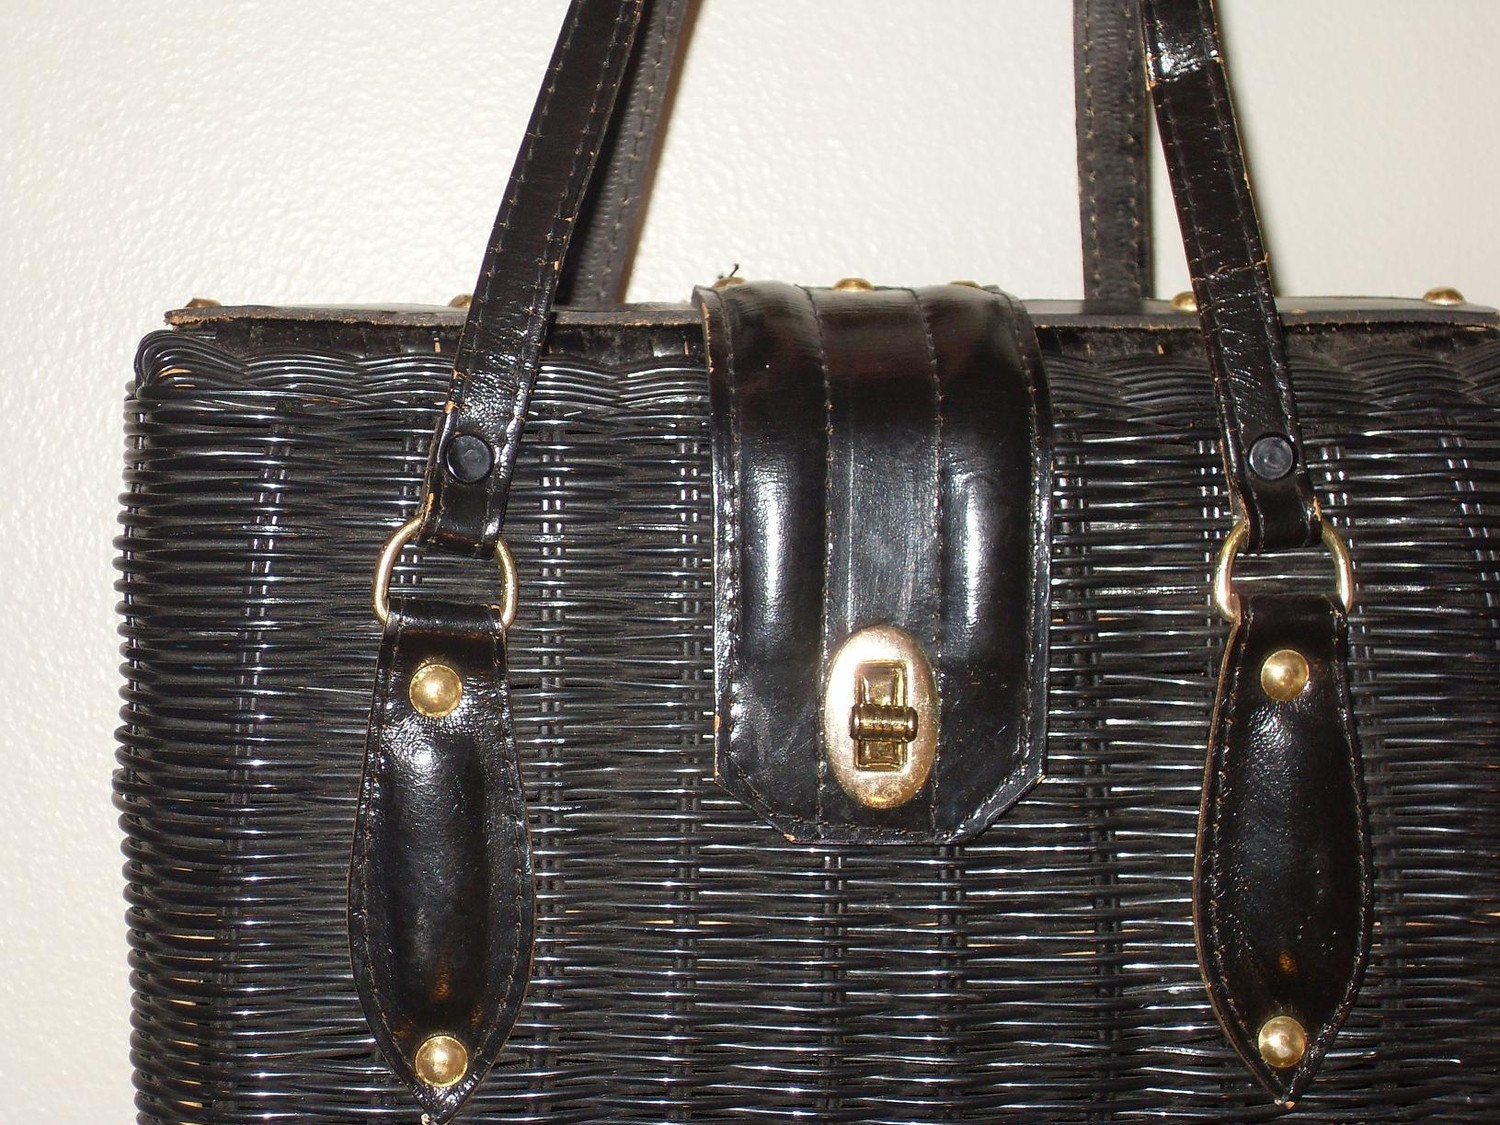 BASKET, Woven black wicker leather handbag